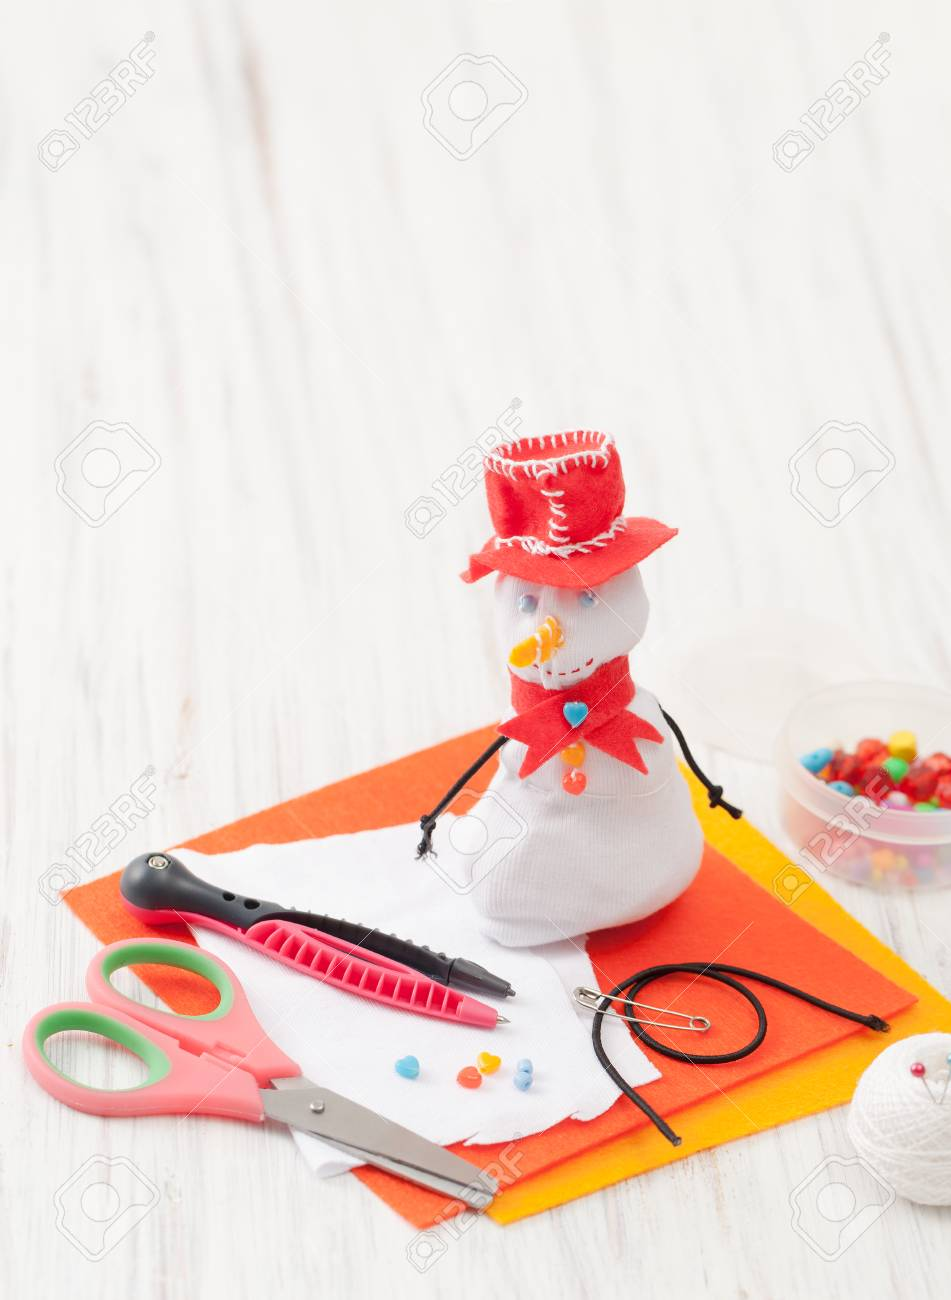 Homemade Crafts With Your Kids For New Year Or Christmas. Gifts ...